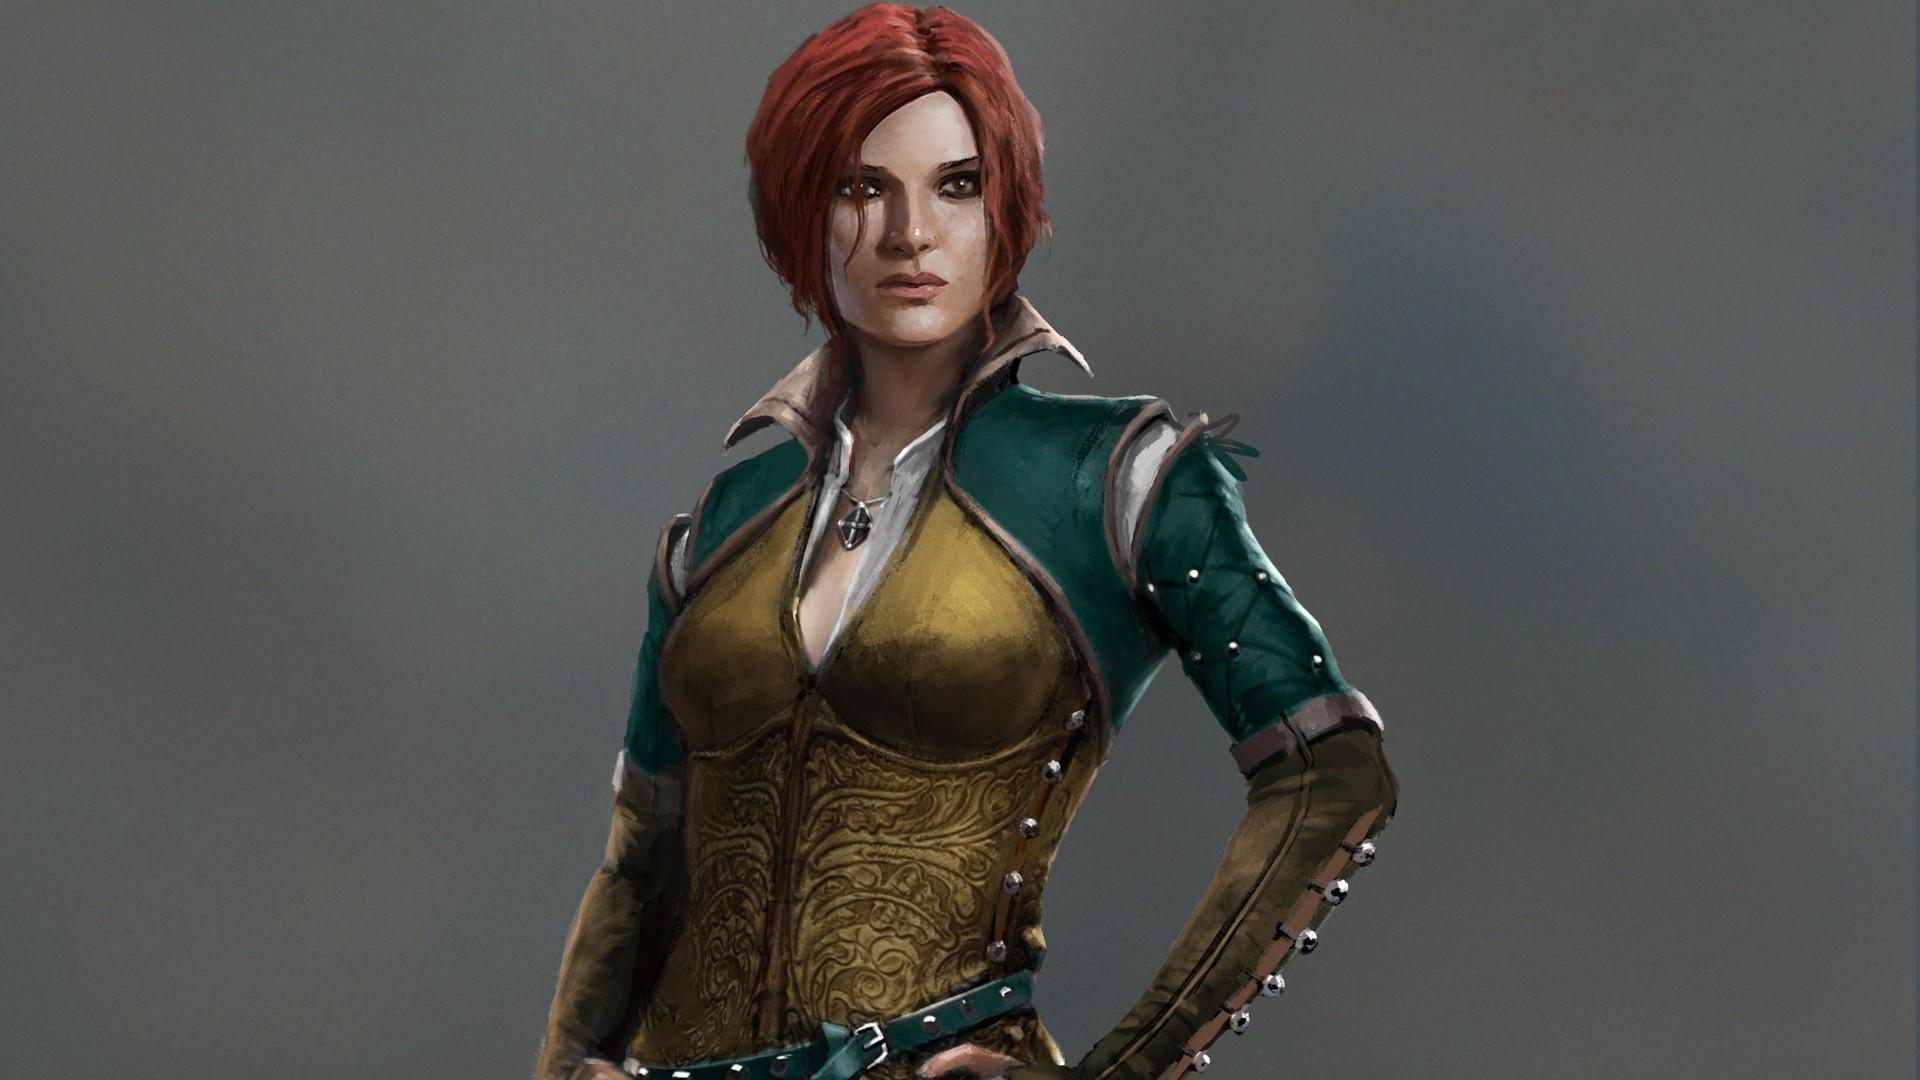 Res: 1920x1080, The Witcher, Triss Merigold Wallpapers HD / Desktop and Mobile Backgrounds